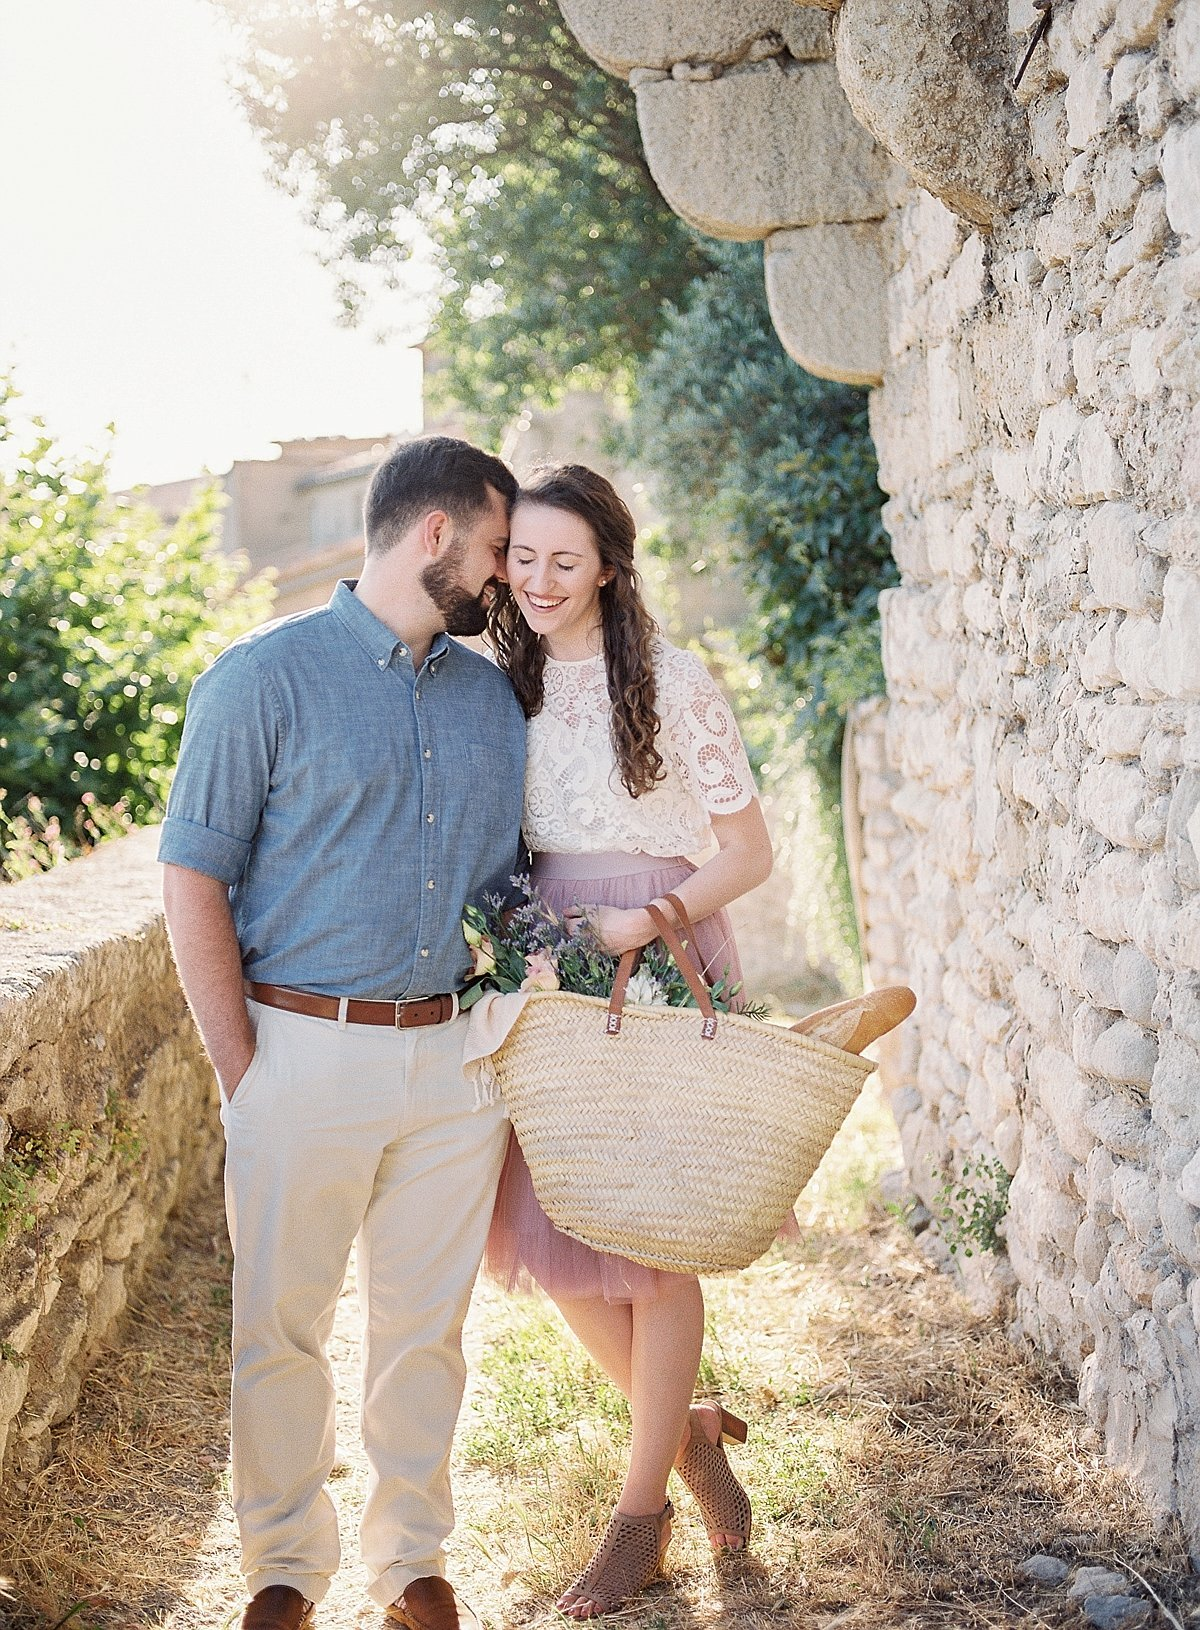 France-lavender-anniversary-session-alicia-yarrish-photography-12-2